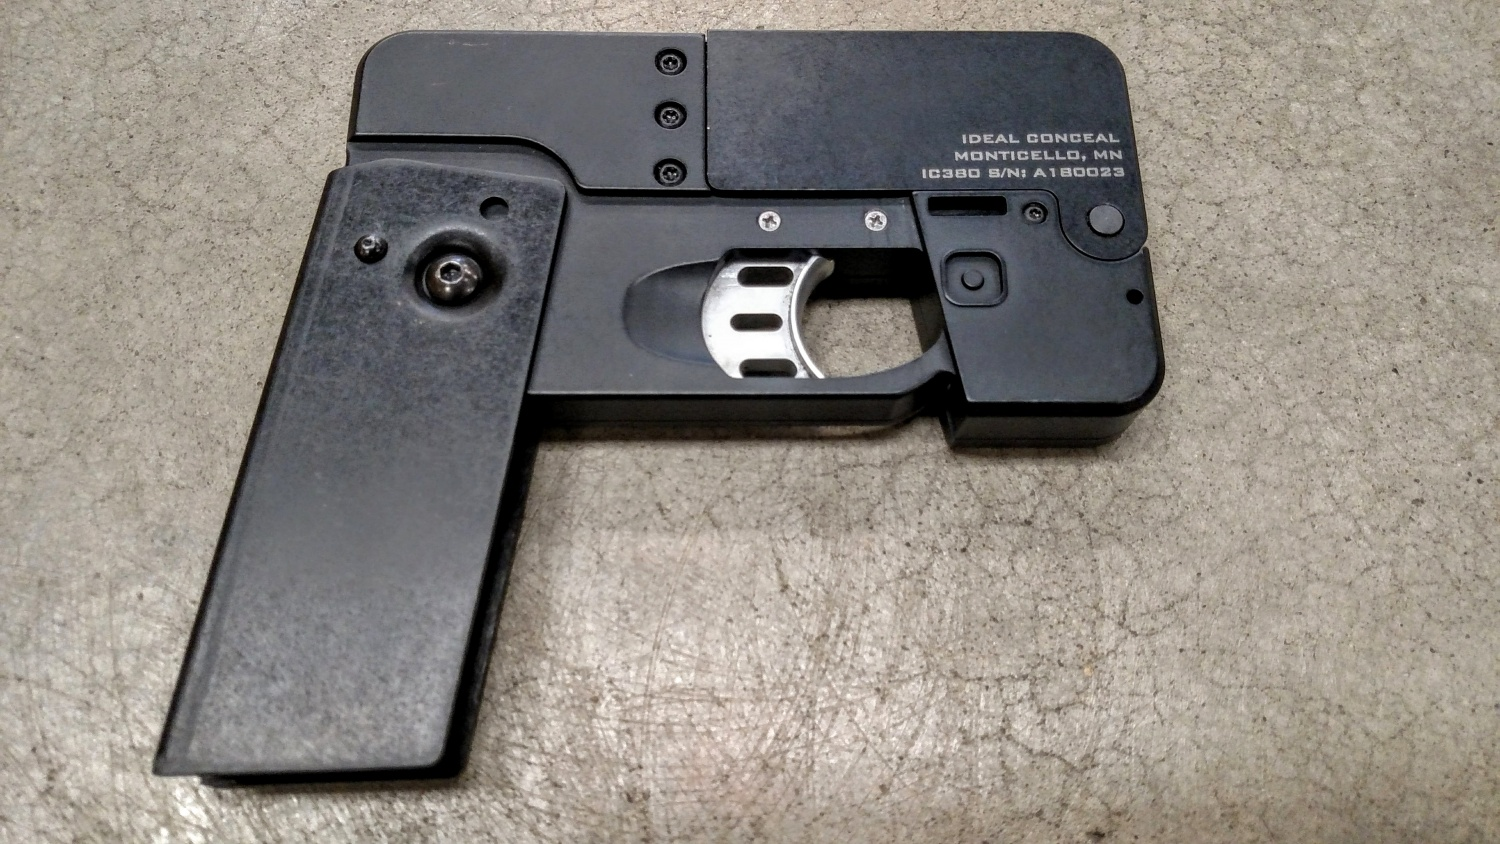 TFB Review: World's 1st Production Ideal Conceal IC380The Firearm Blog